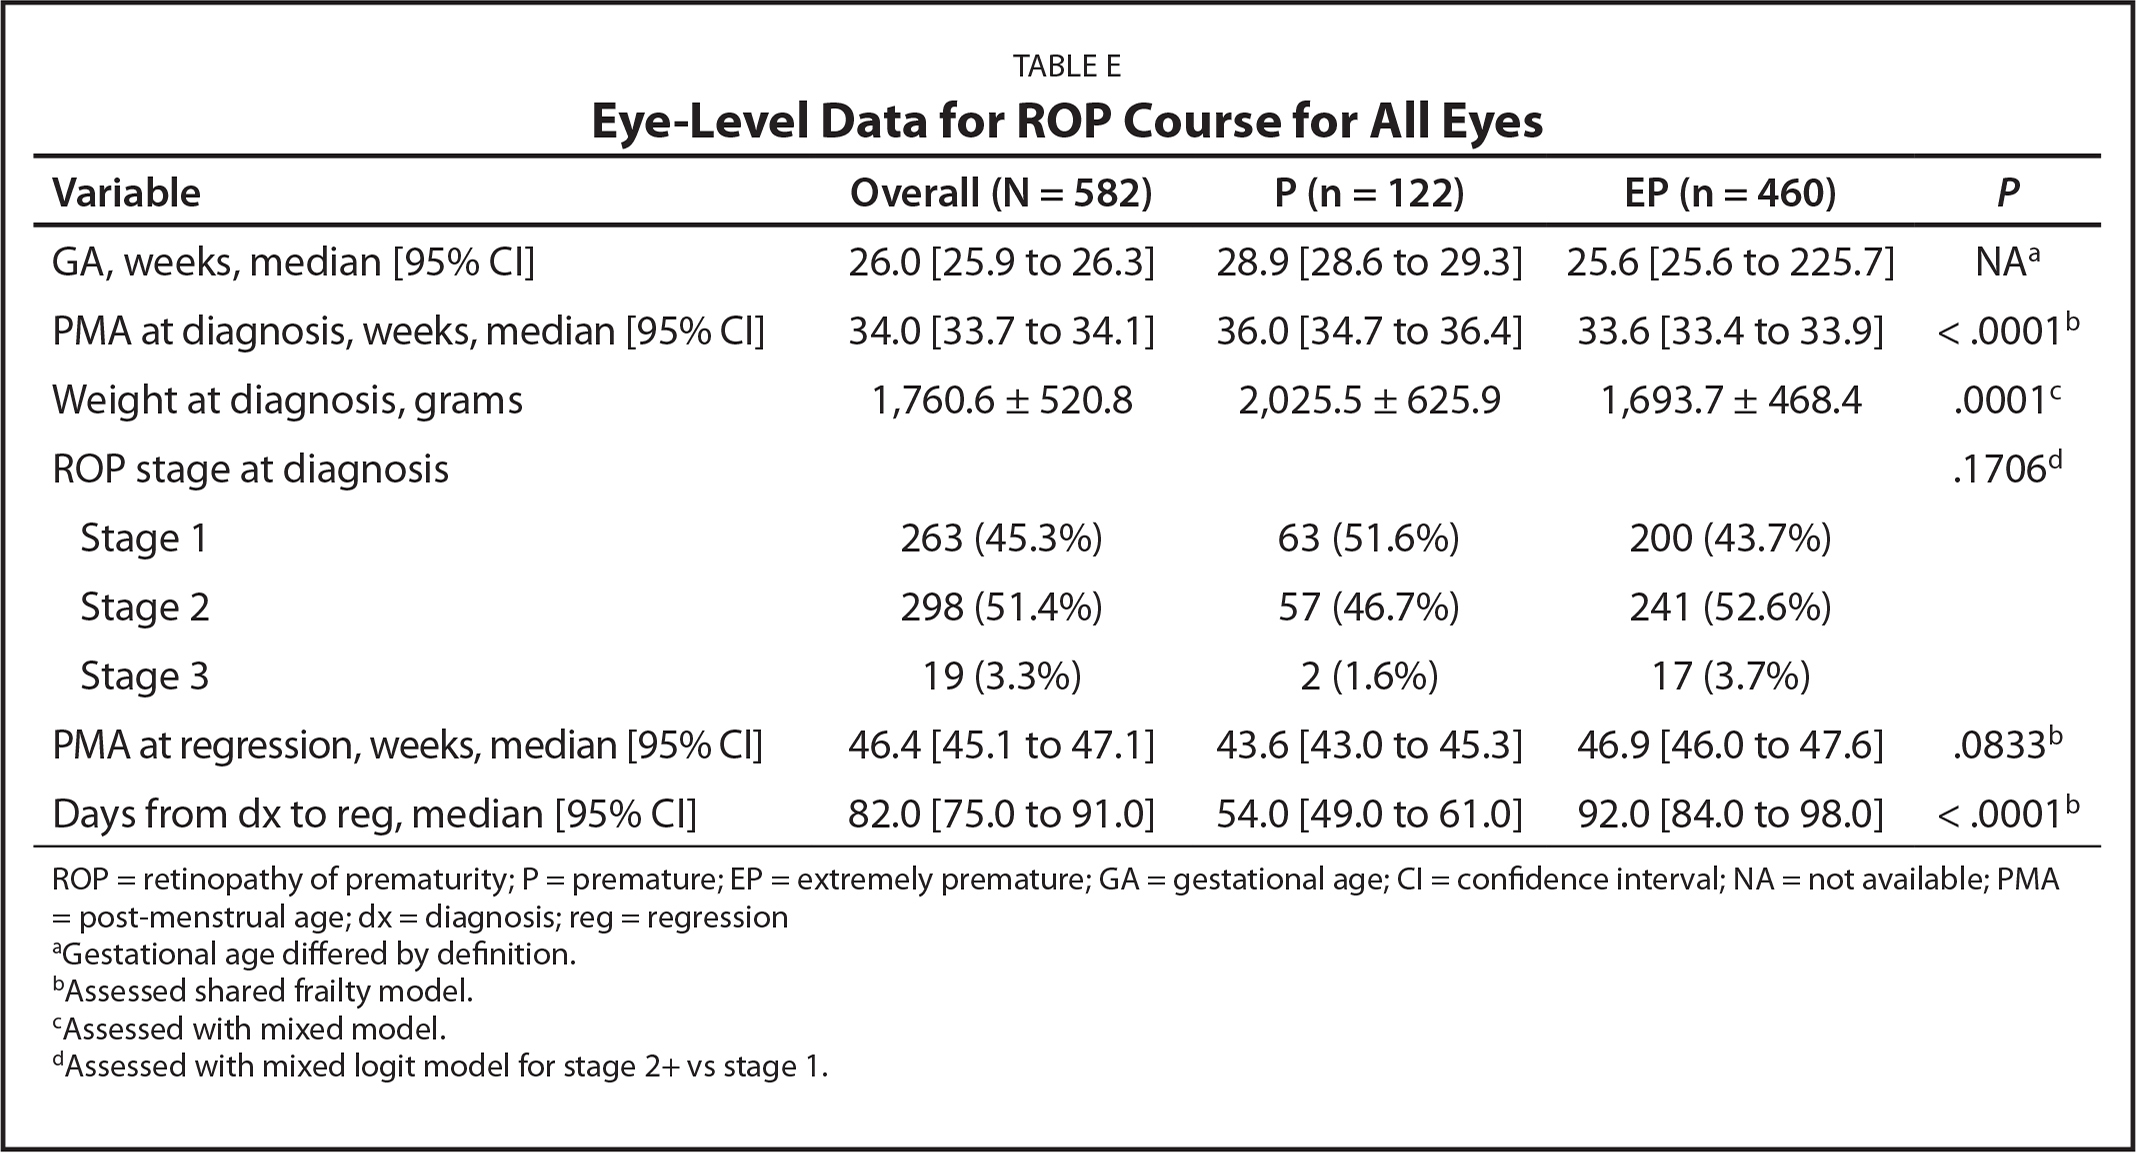 Eye-Level Data for ROP Course for All Eyes